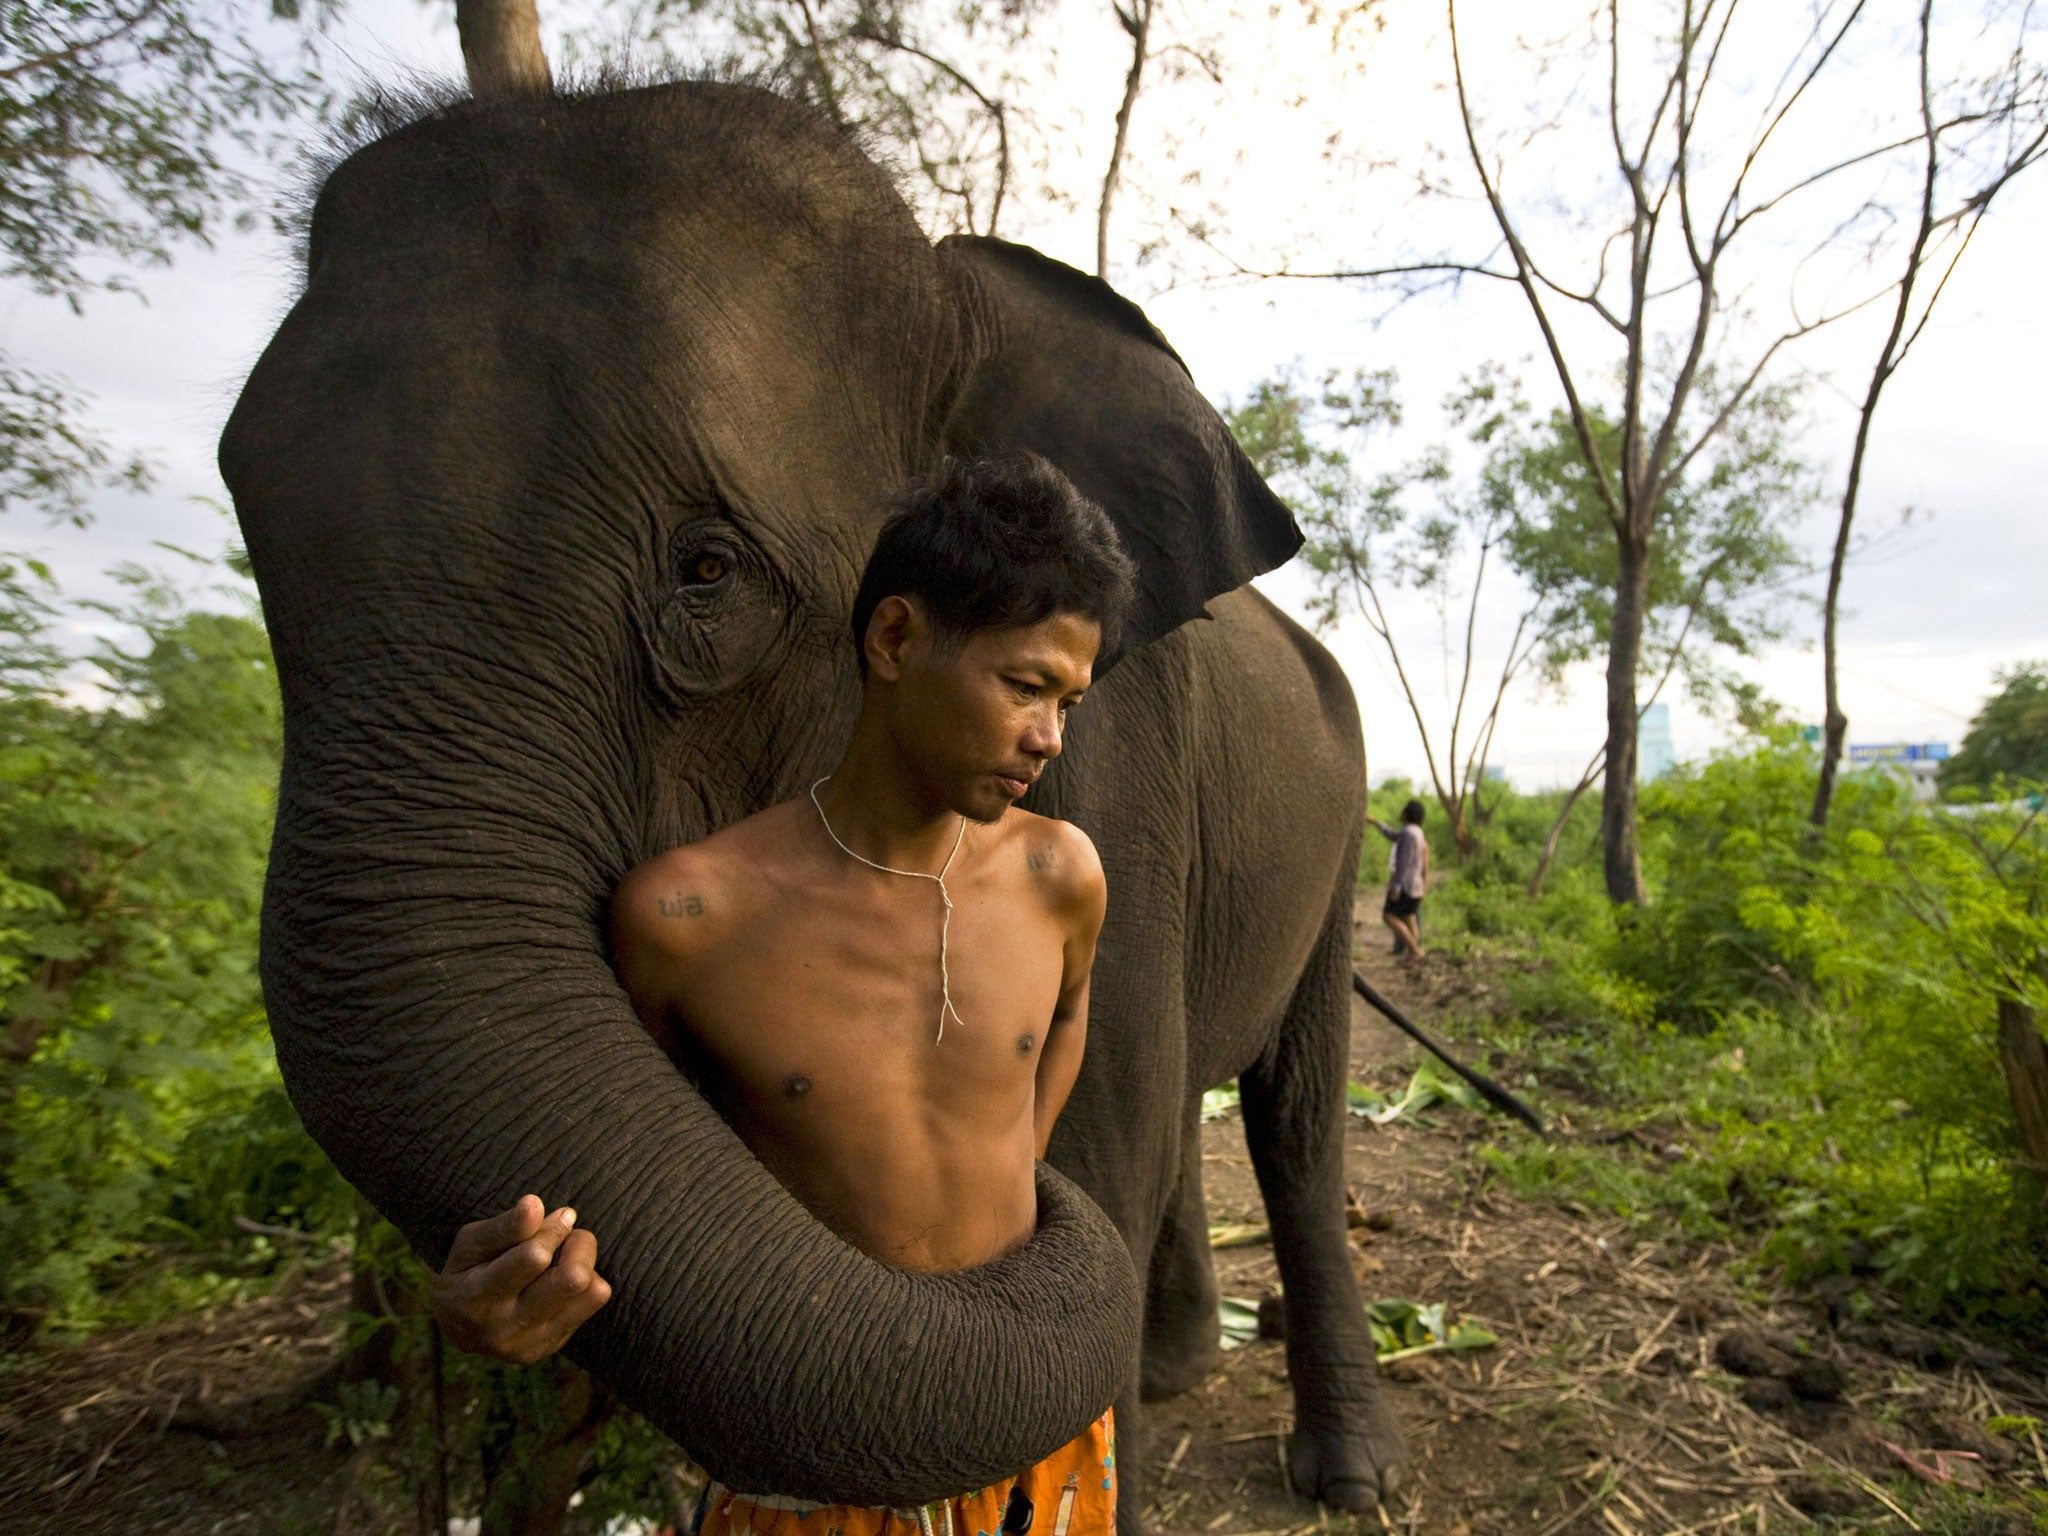 Men - sex with animals images 20